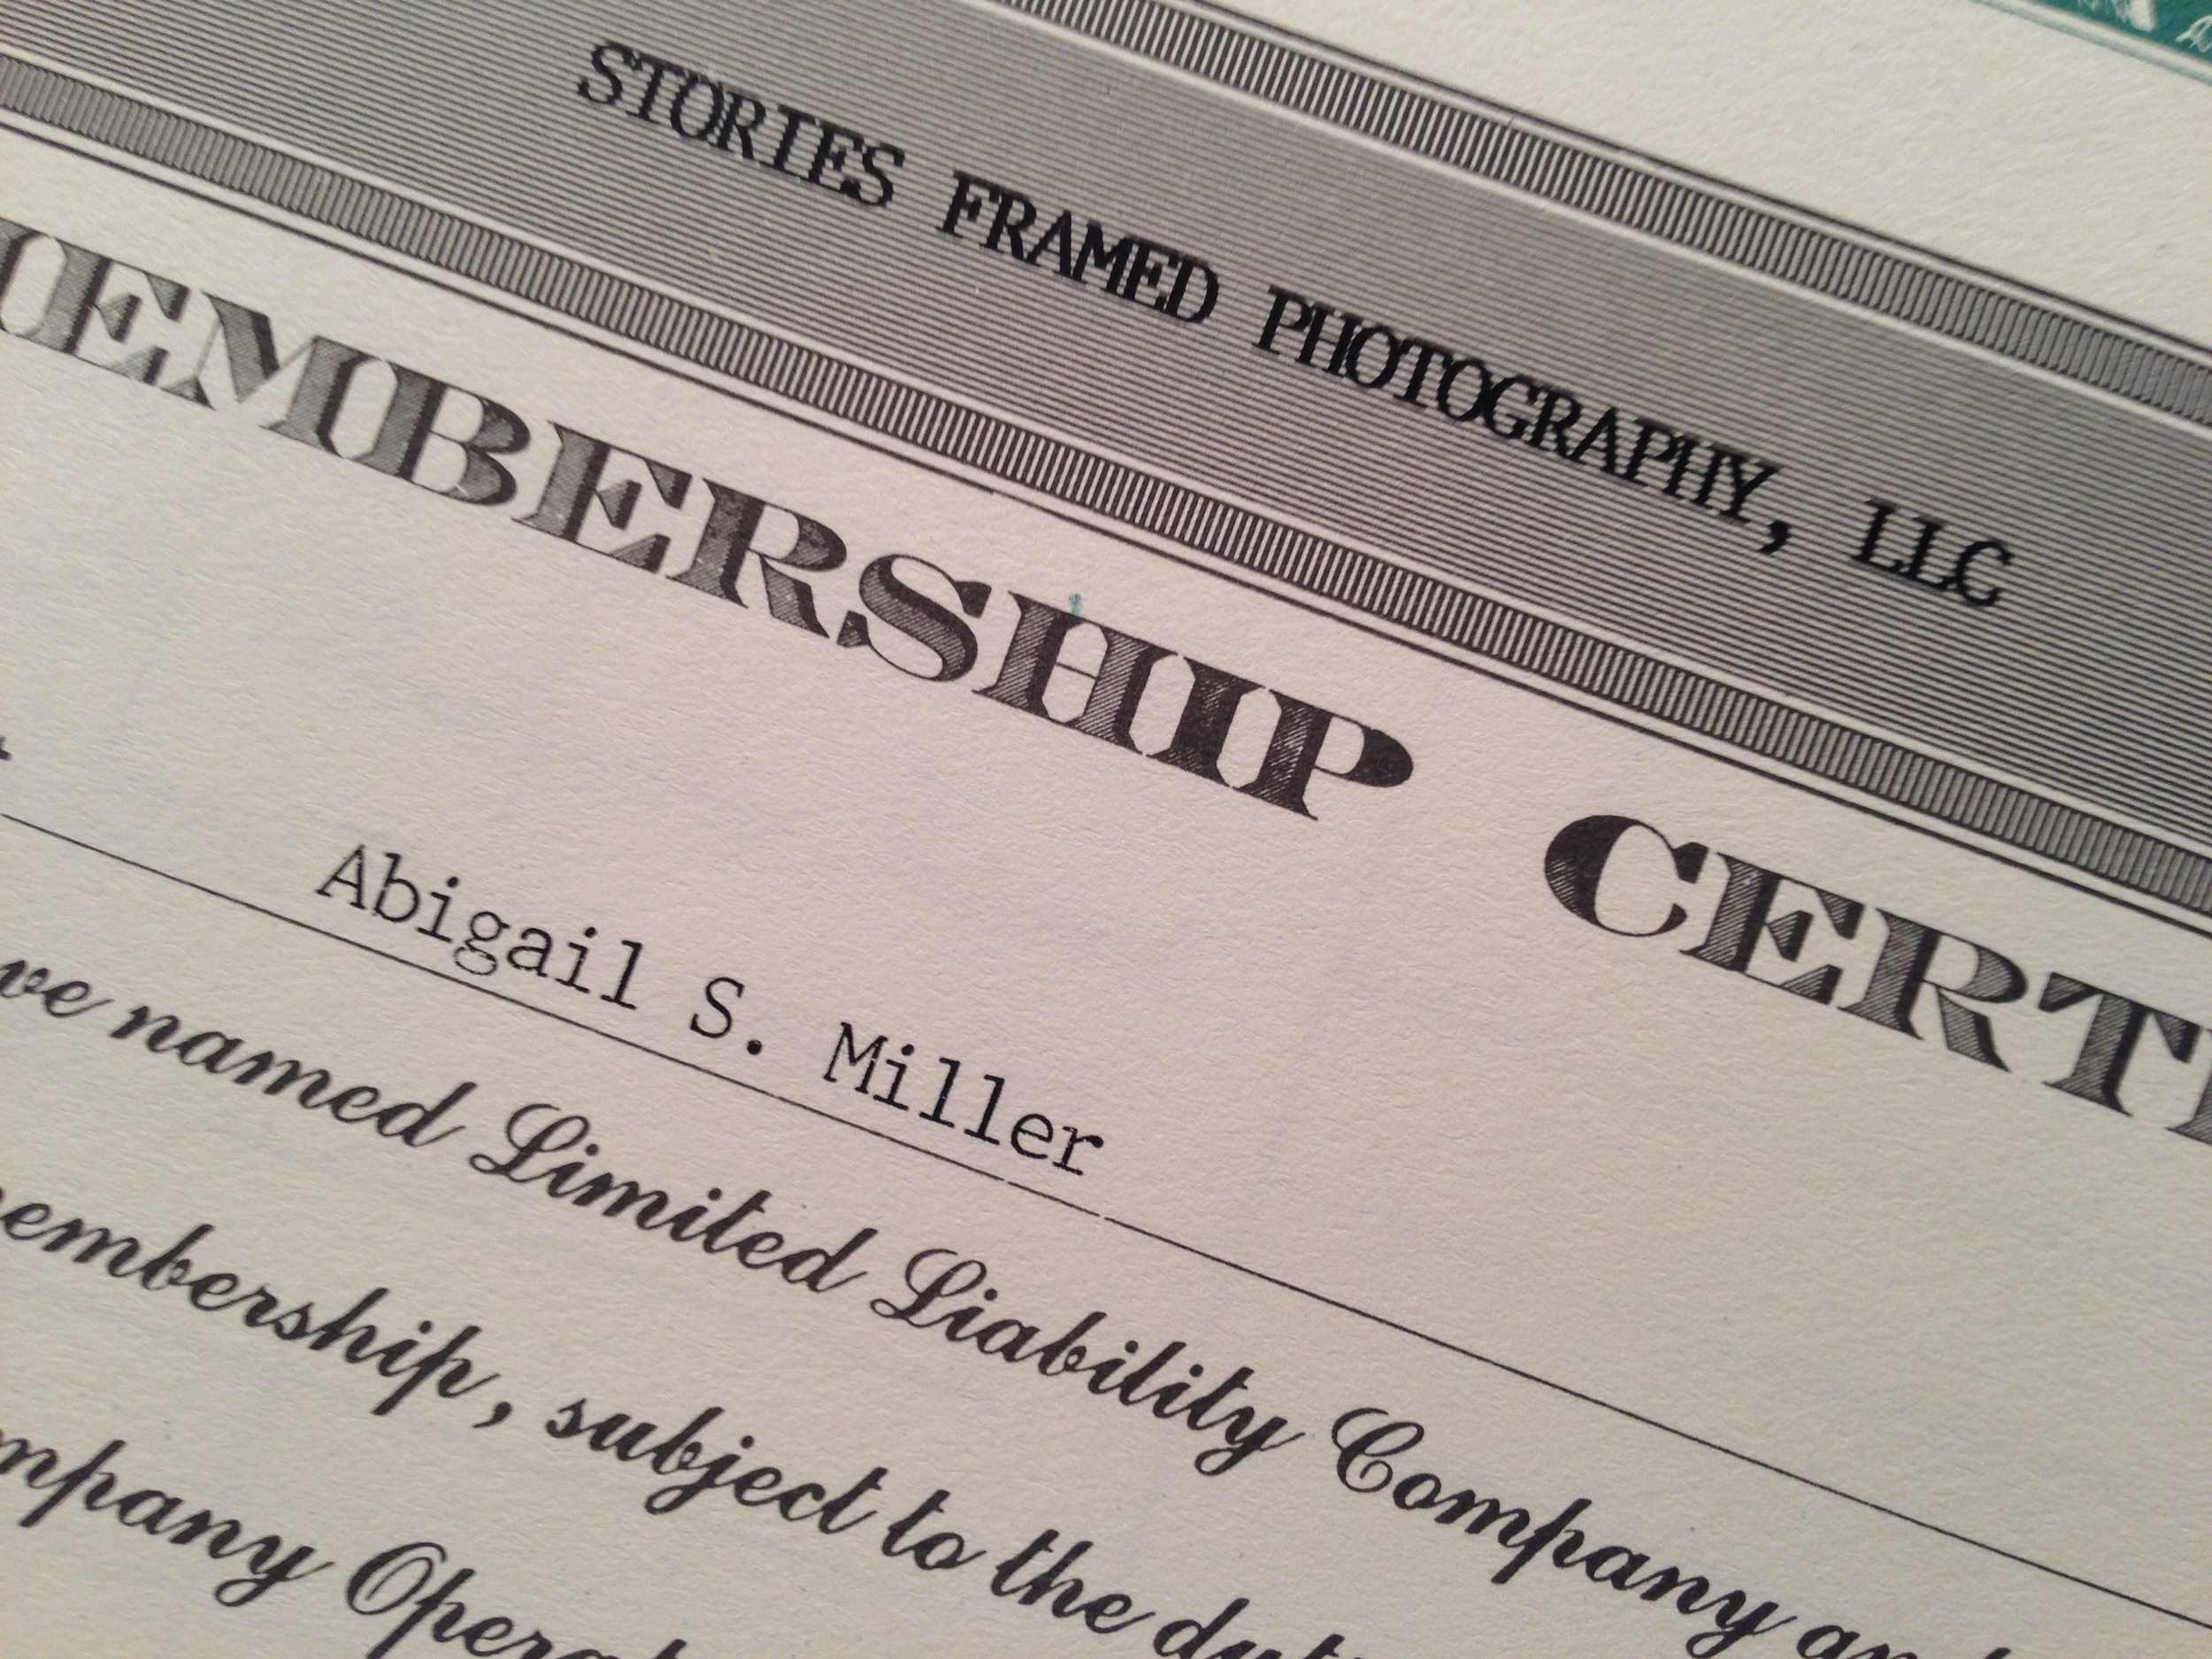 Coming soon to a wall in my studio... the officialLLC certificate! Squeal!